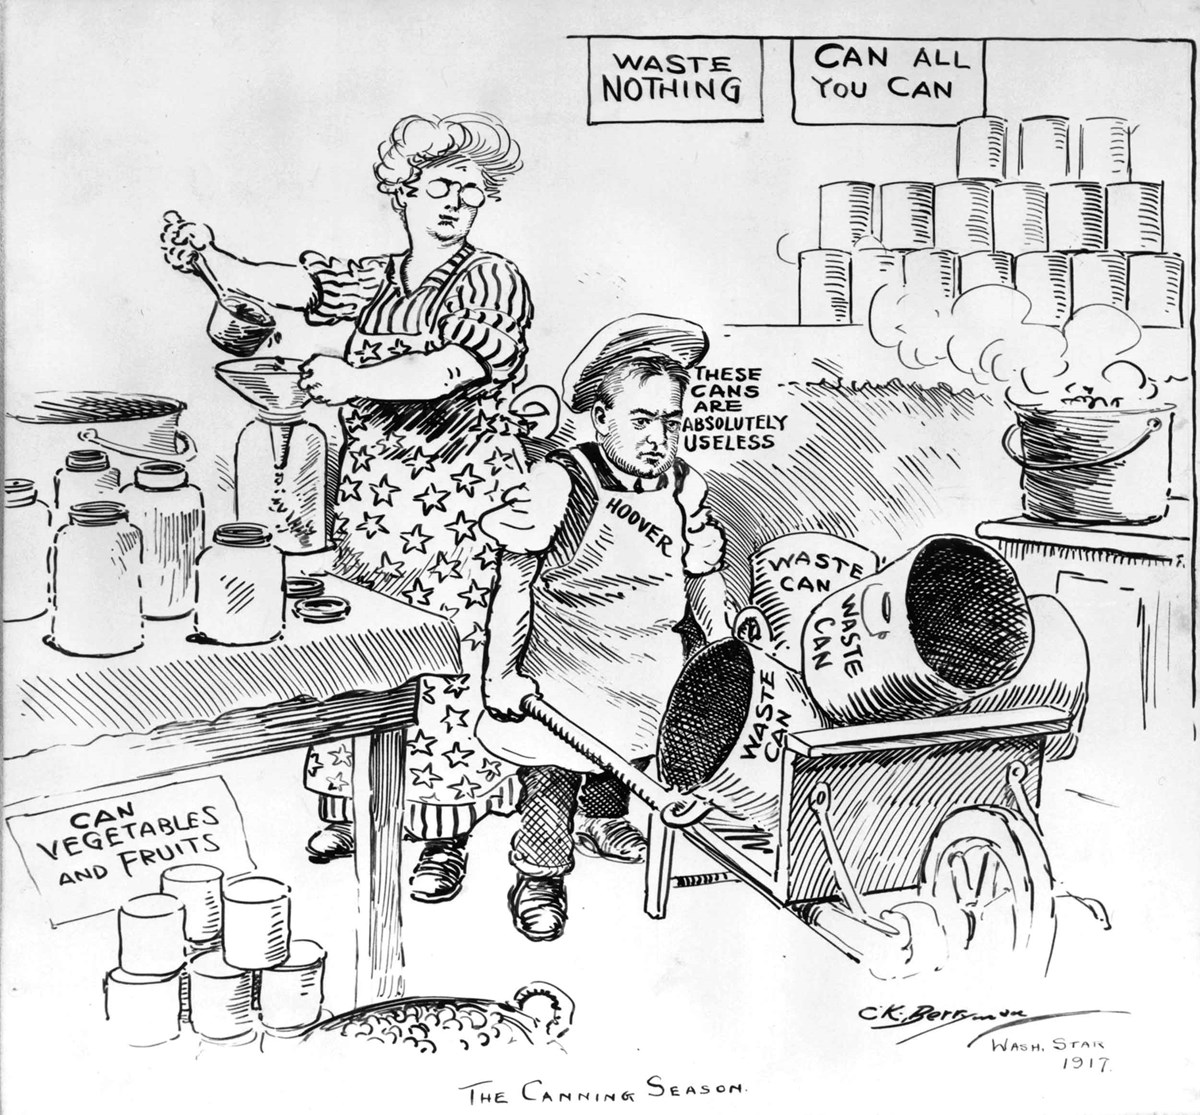 A political cartoon depicts a kitchen representing wartime food conservation.